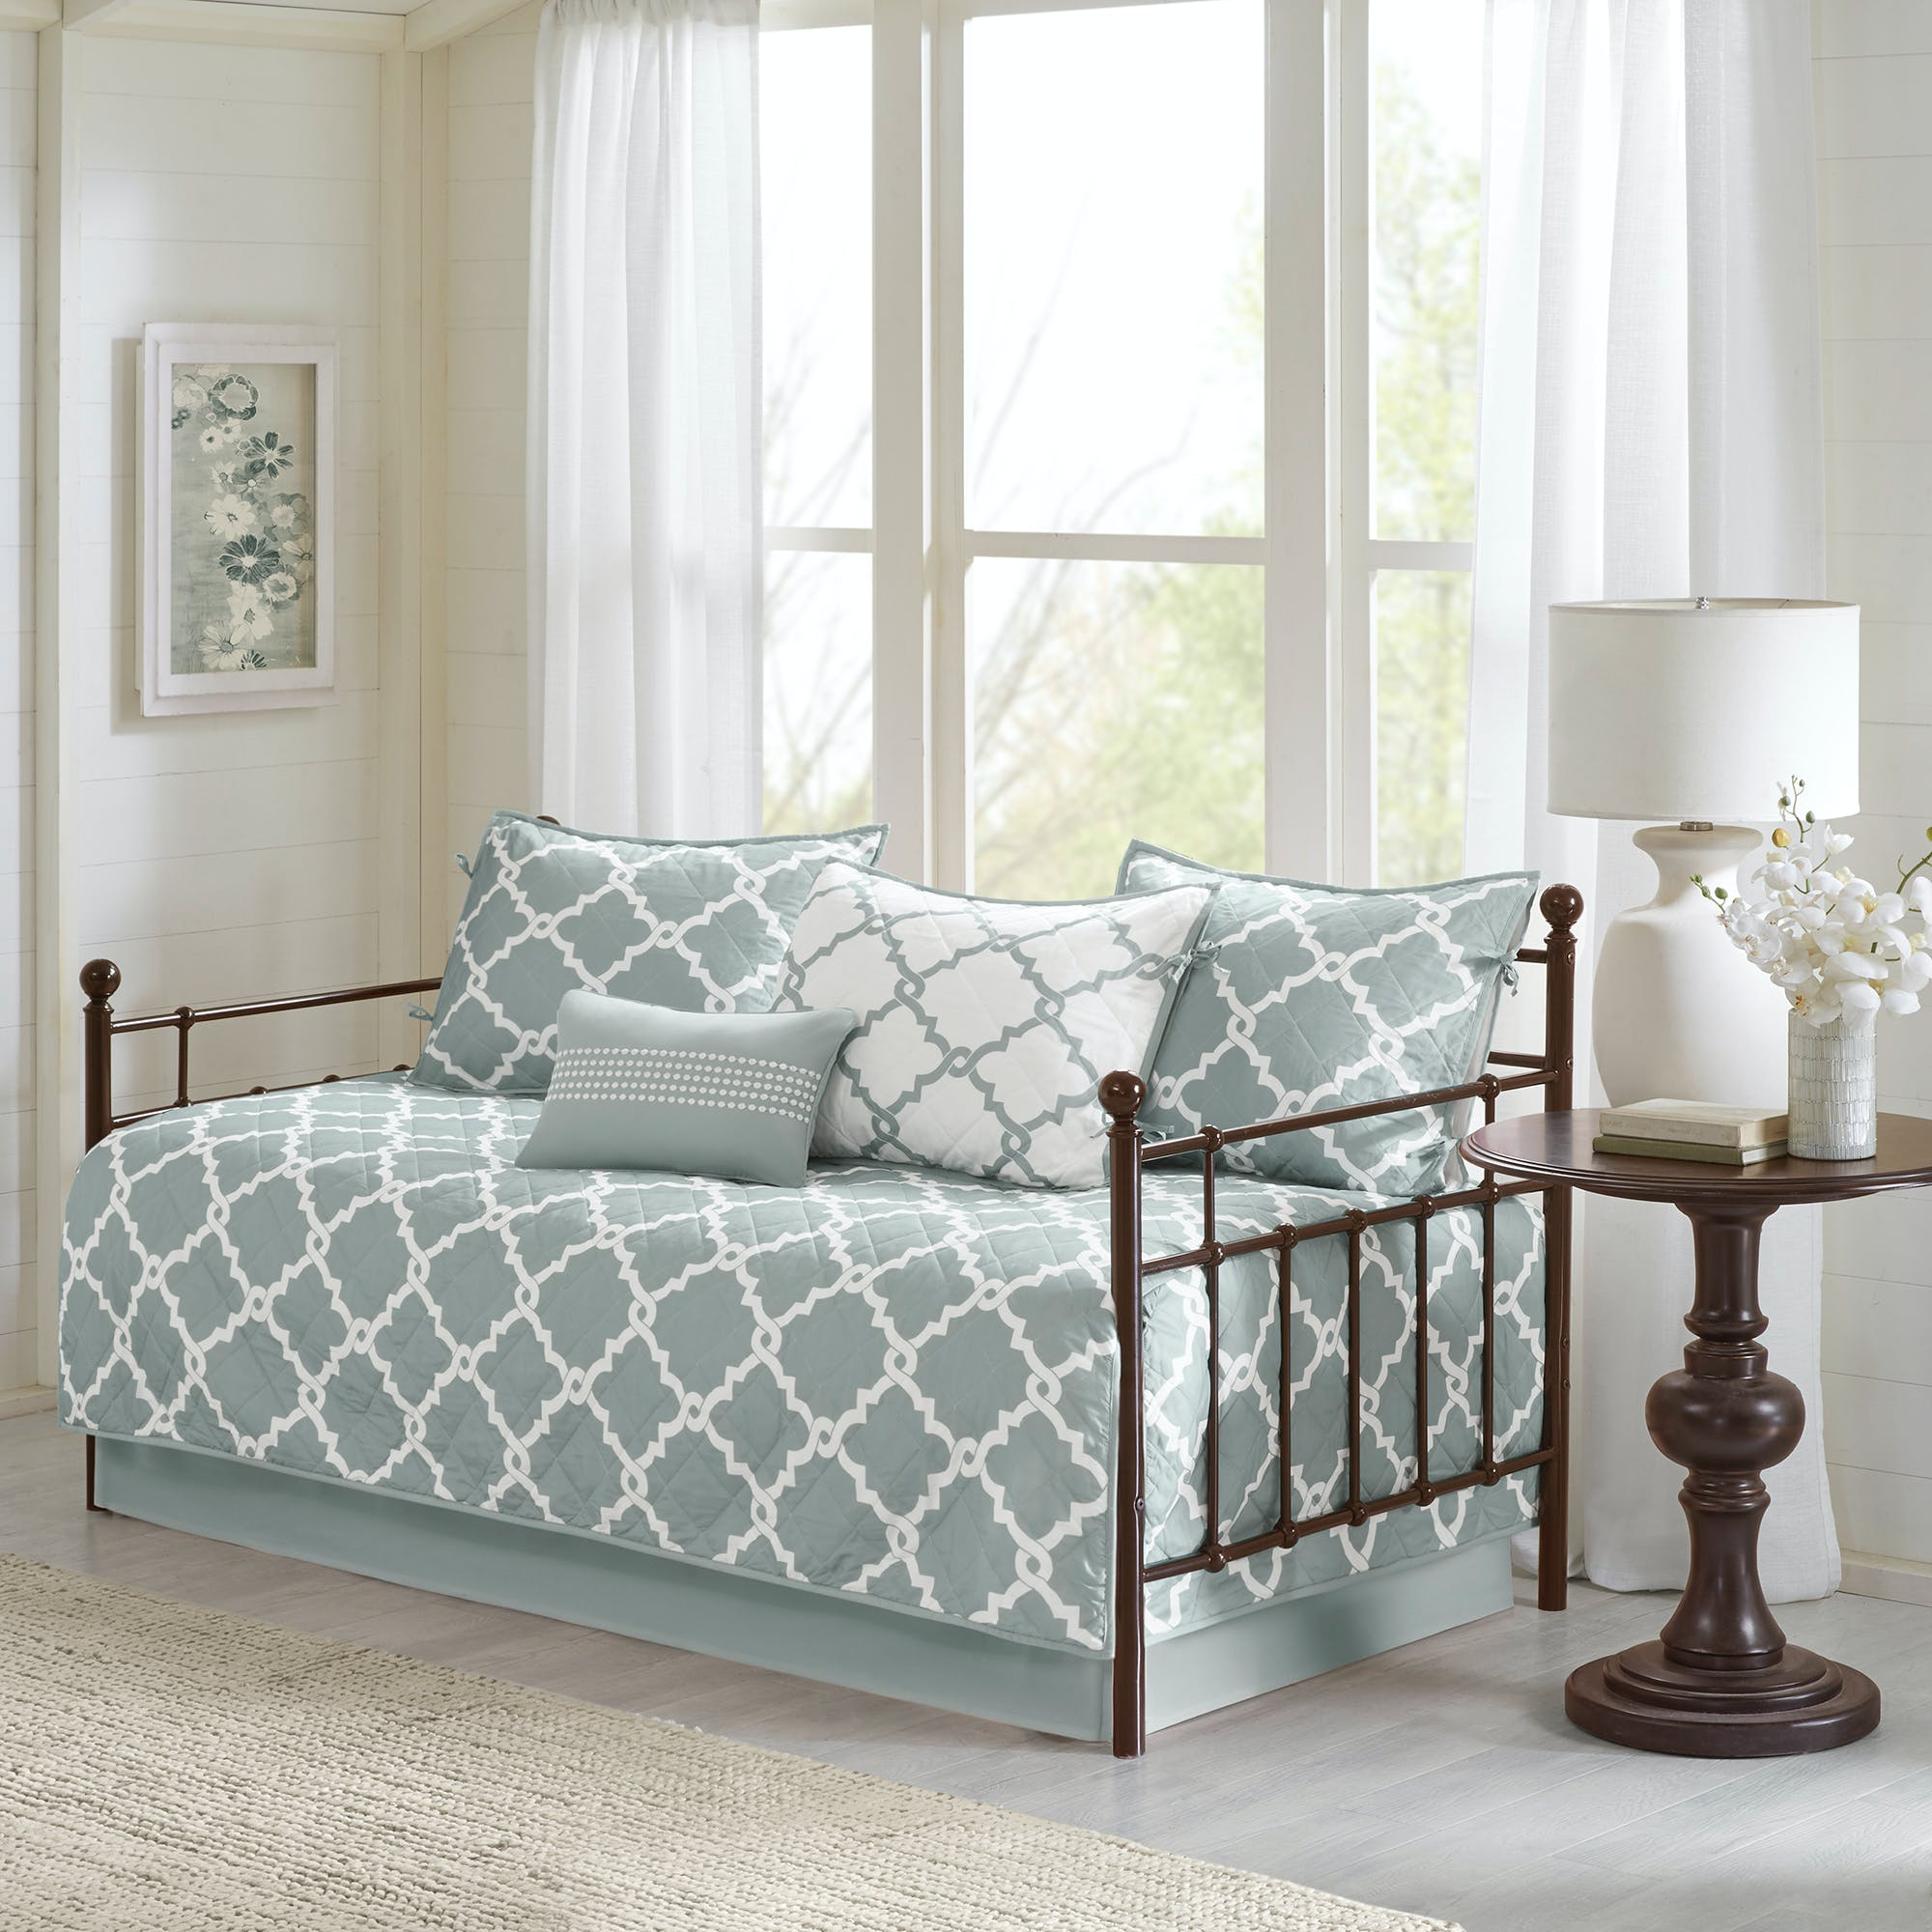 Daybed Comforter Set Farmers Home Furniture